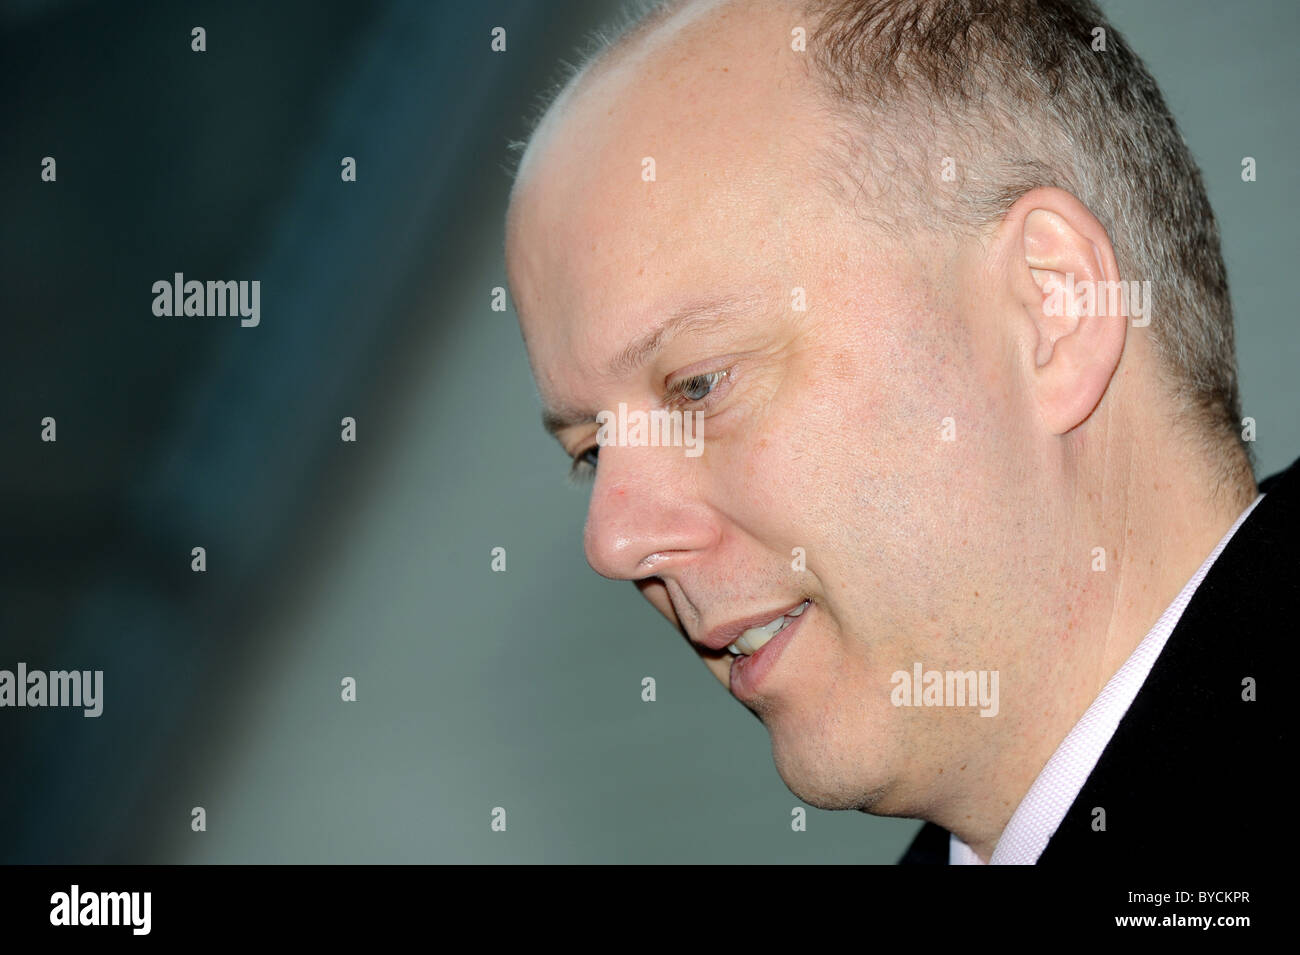 Employment Minister Chris Grayling during a visit to Brighton's City College - Stock Image